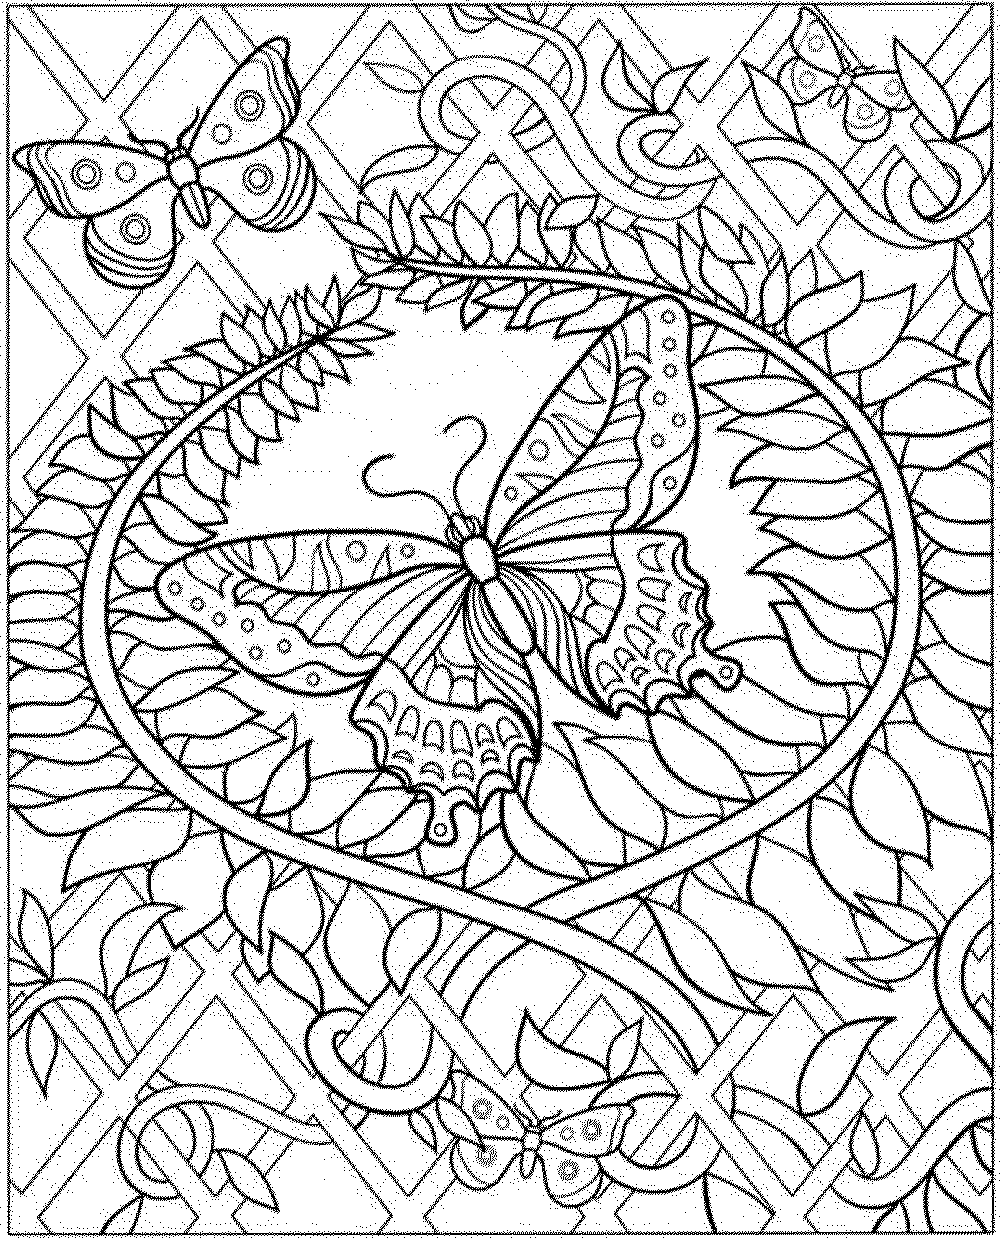 Free Christmas Coloring Pages For Adults Printable Hard To Color With 28 Collection Of Intricate Drawings High Quality